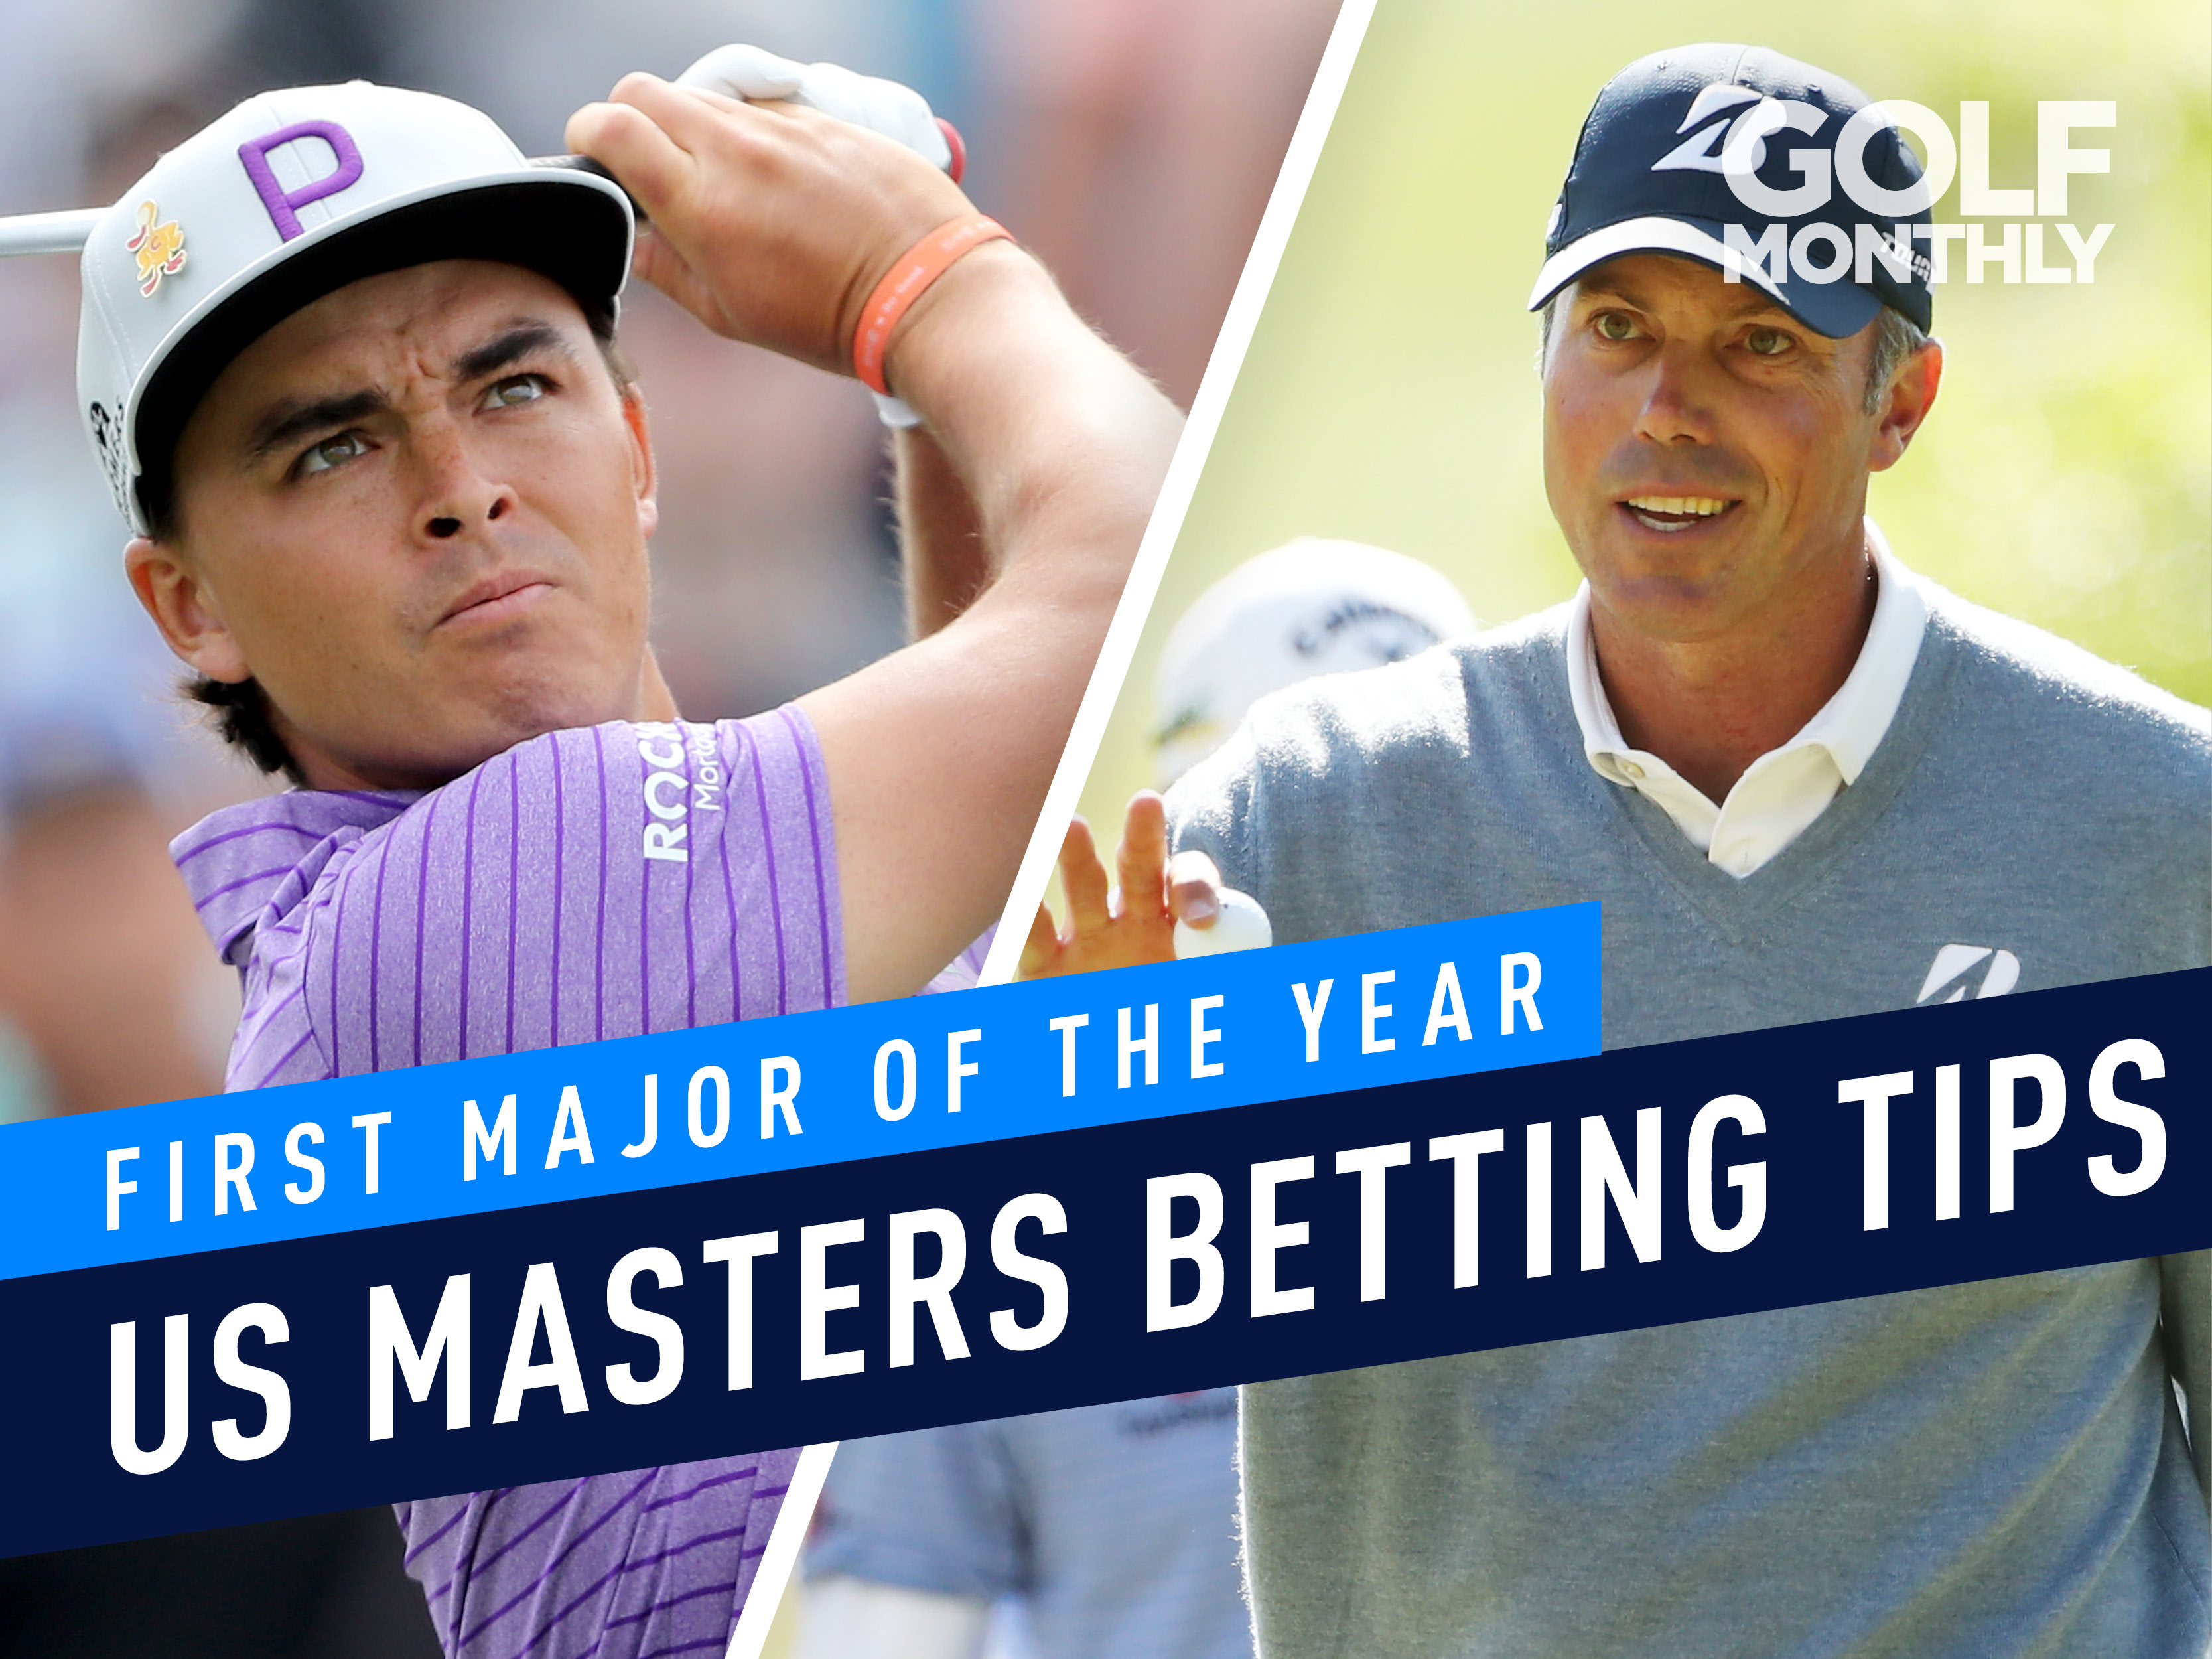 US Masters Betting